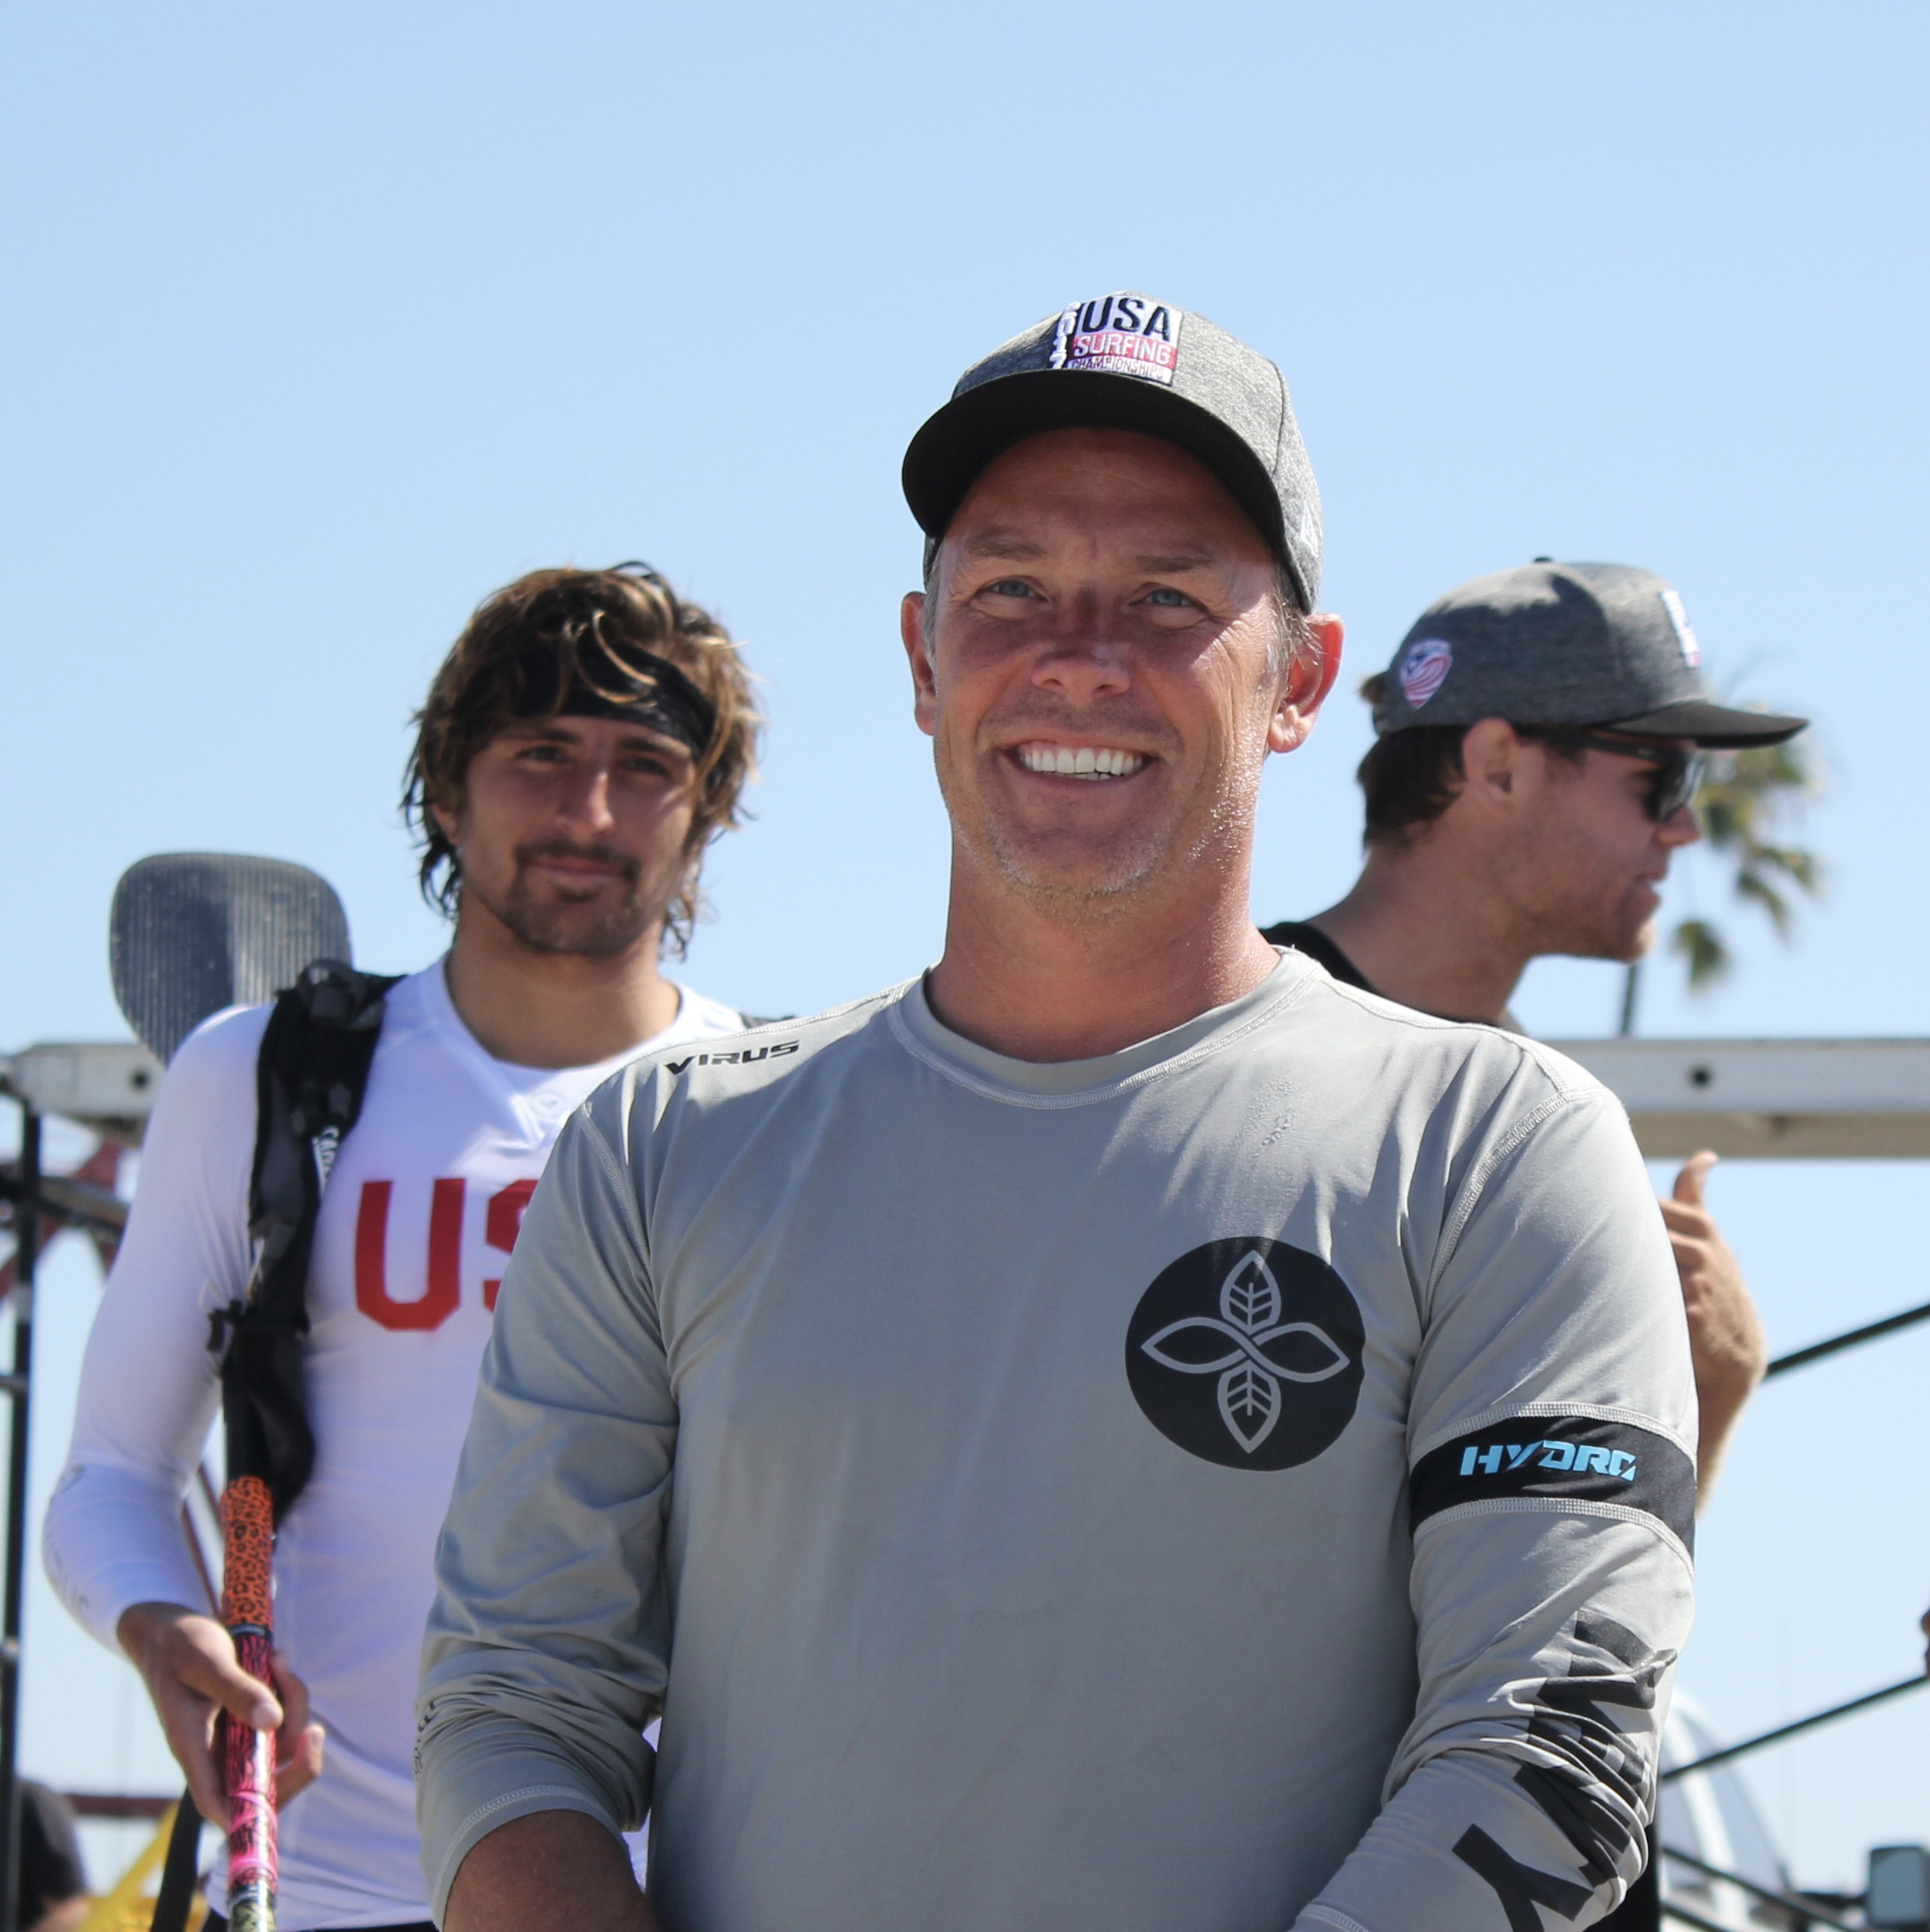 The Return of Erik Logan - SUP's Biggest Fan and Advisor talks USA Surfing, Trends in the Industry and What He's Riding